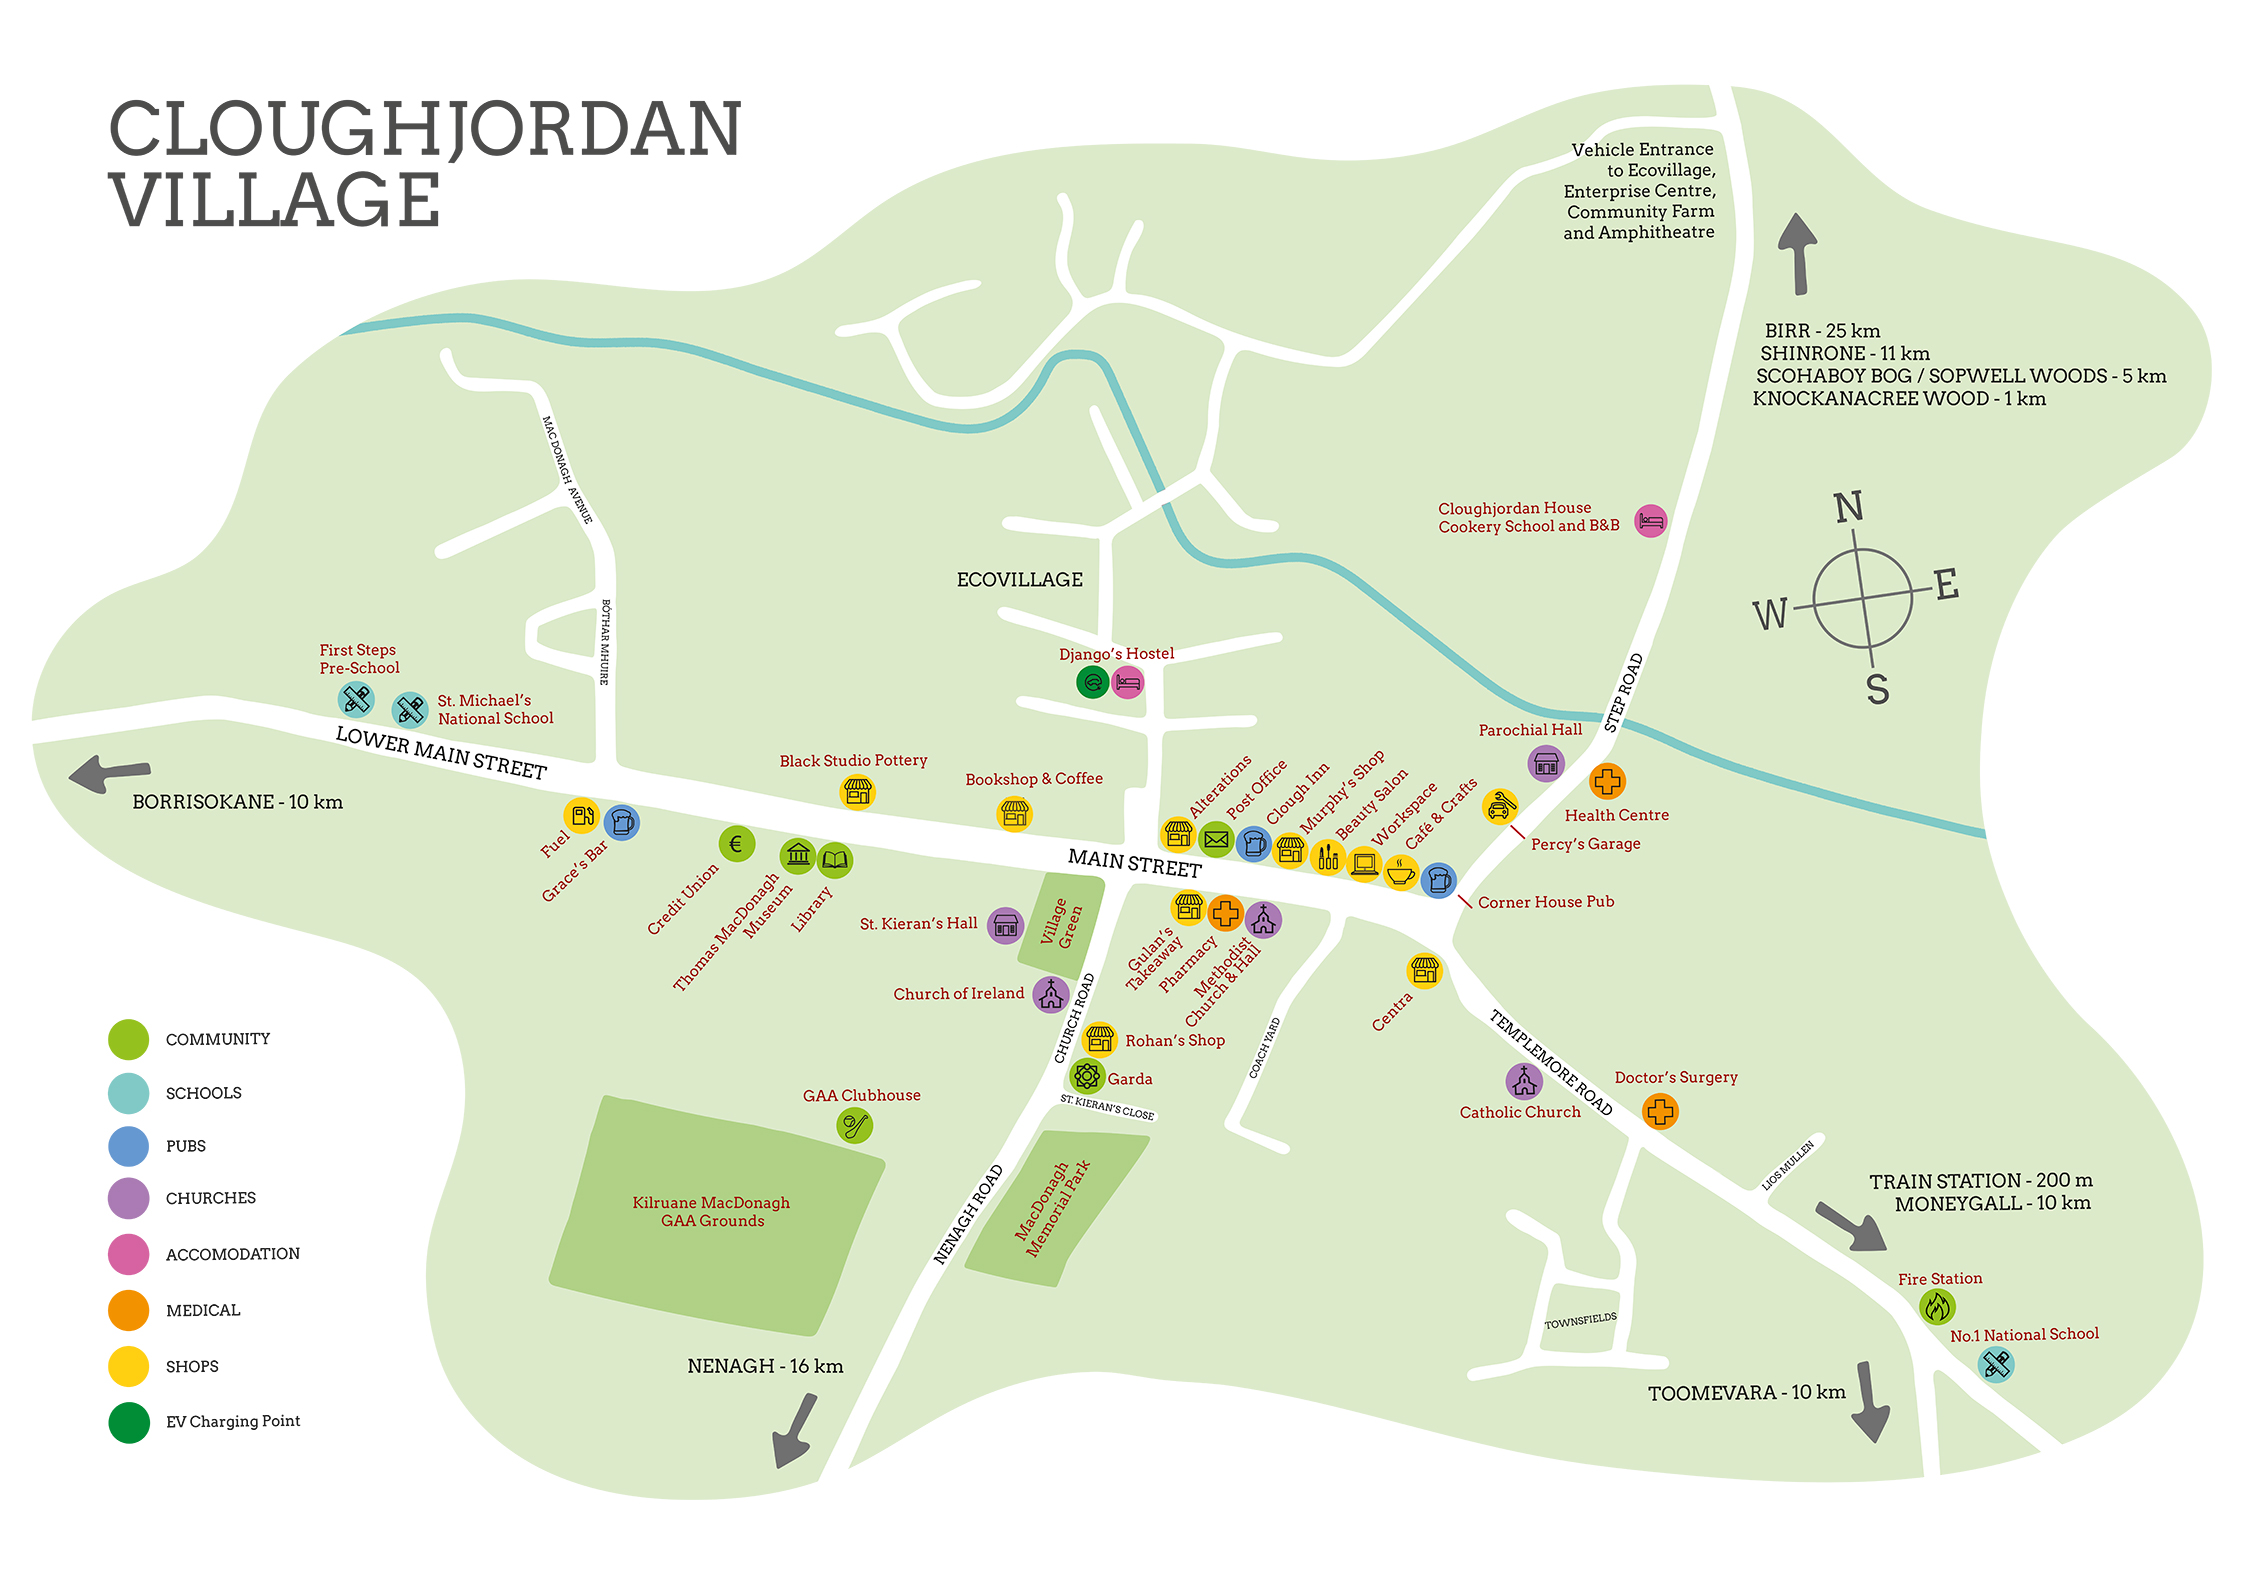 Map of Cloughjordan